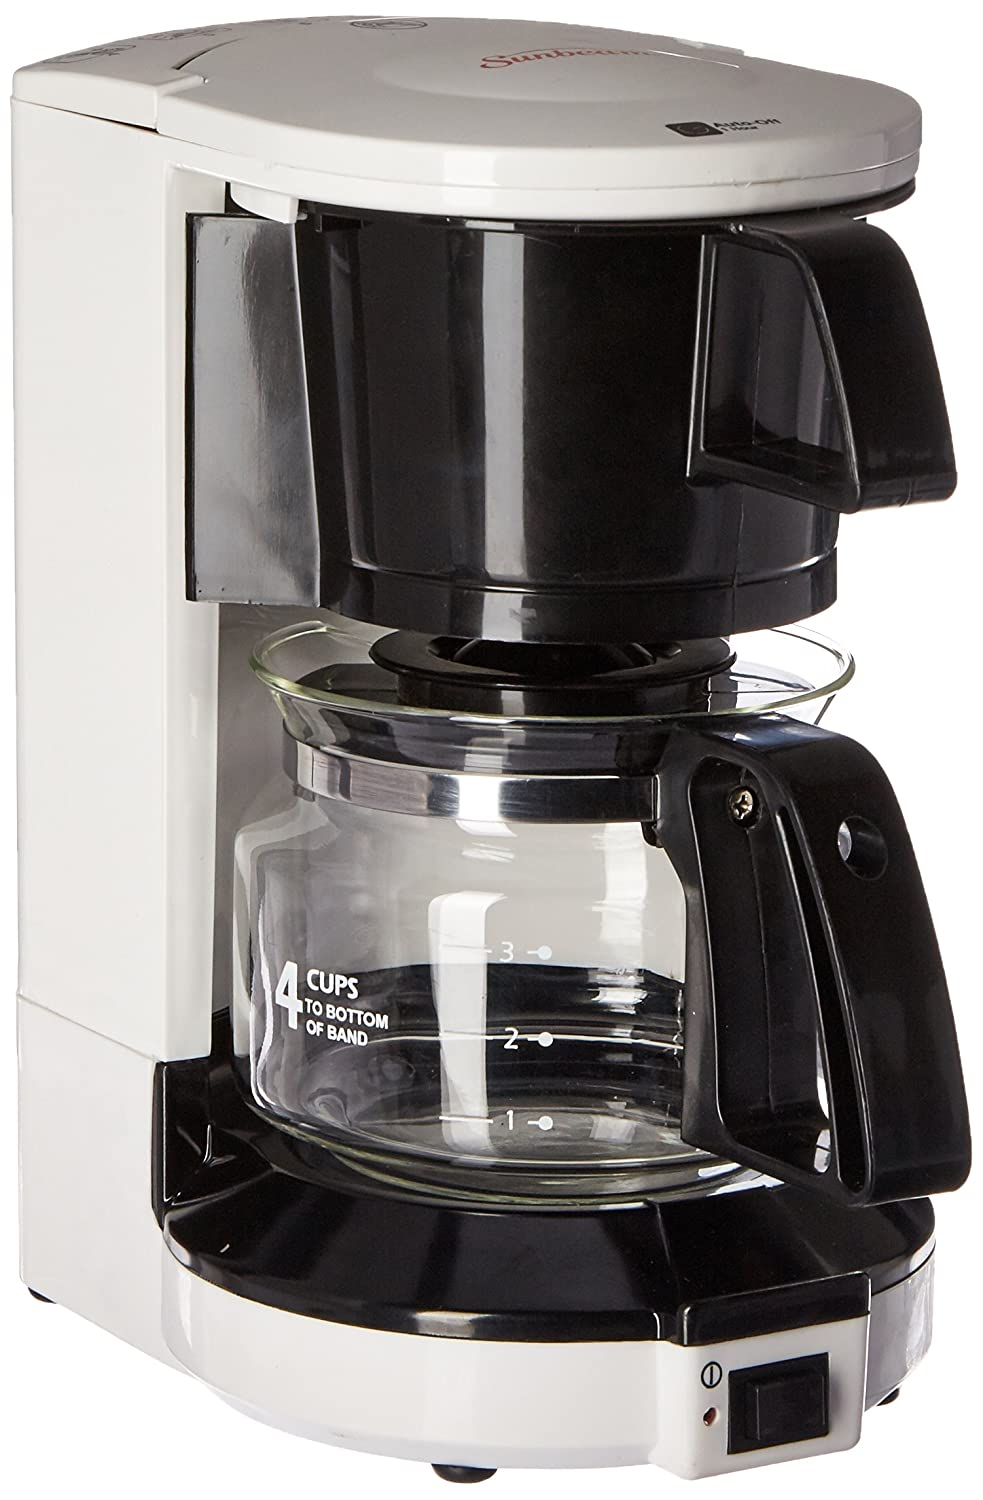 Sunbeam 3279-500 4-Cup Coffee Maker